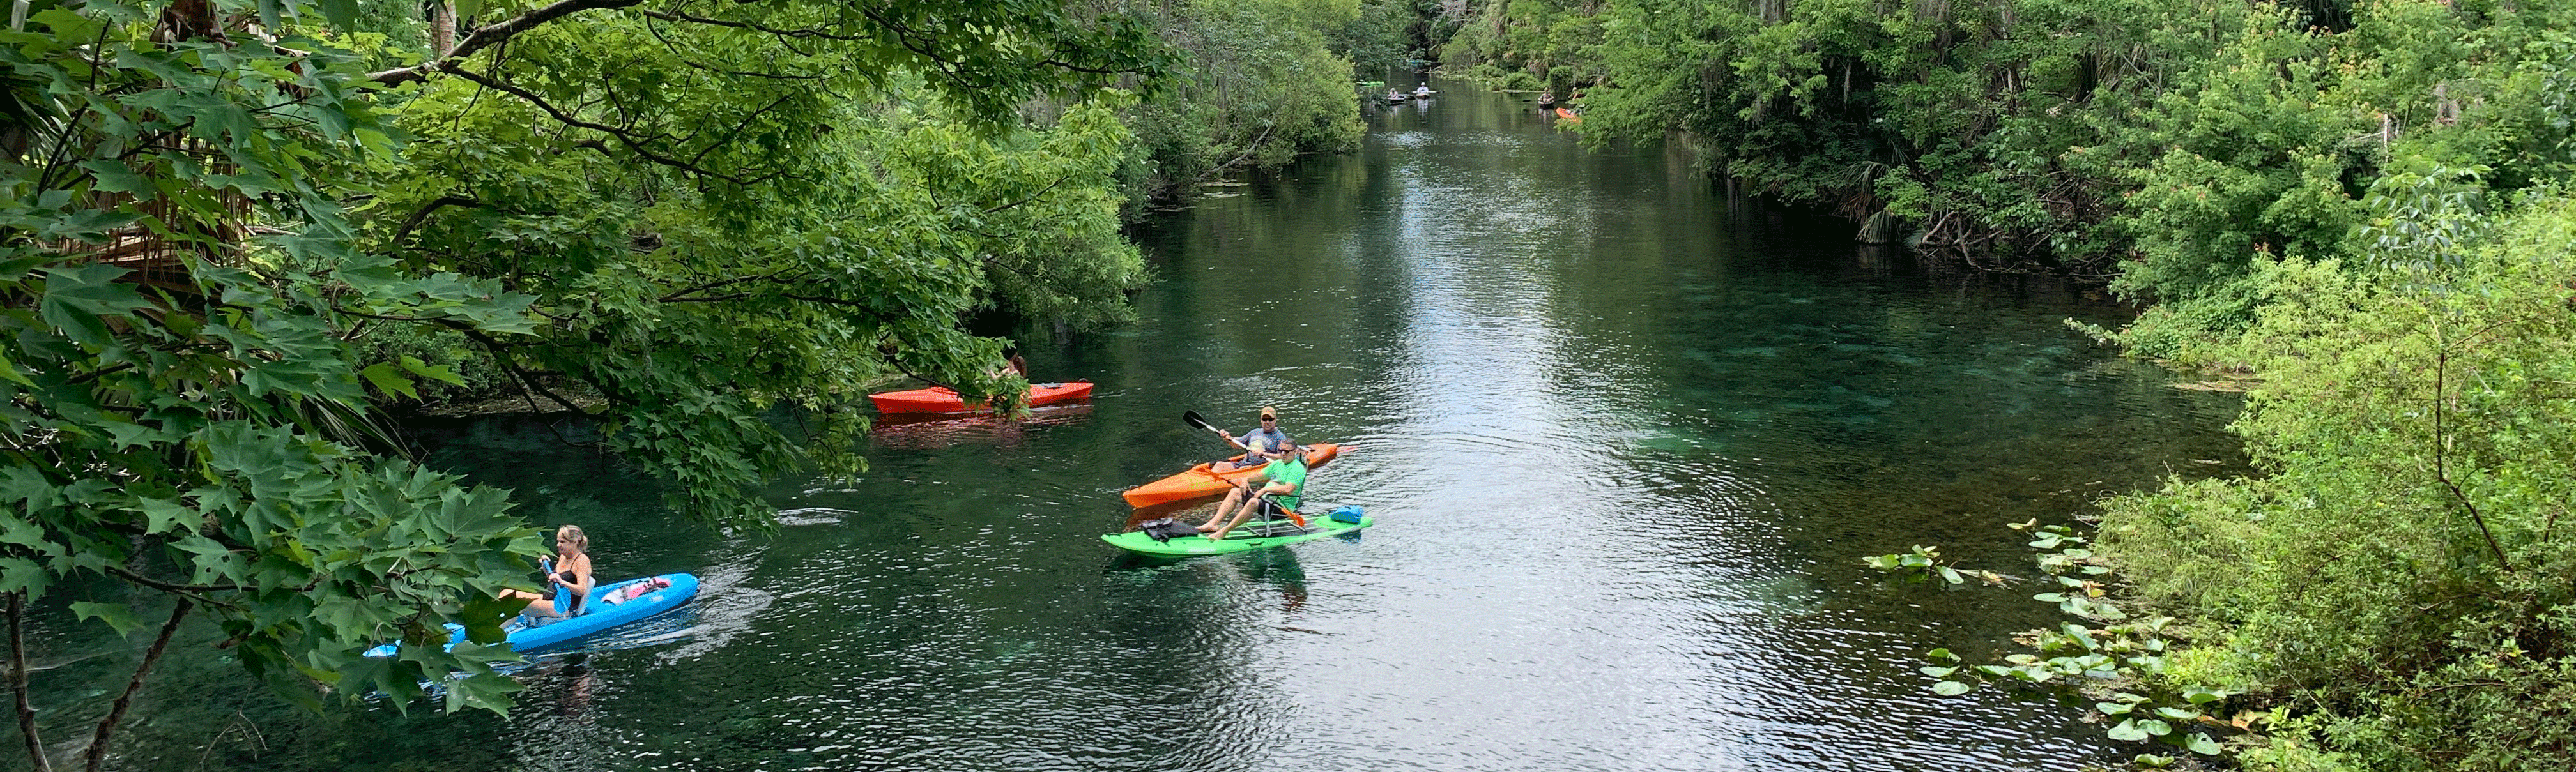 Kayakers on the Silver River in Ocala